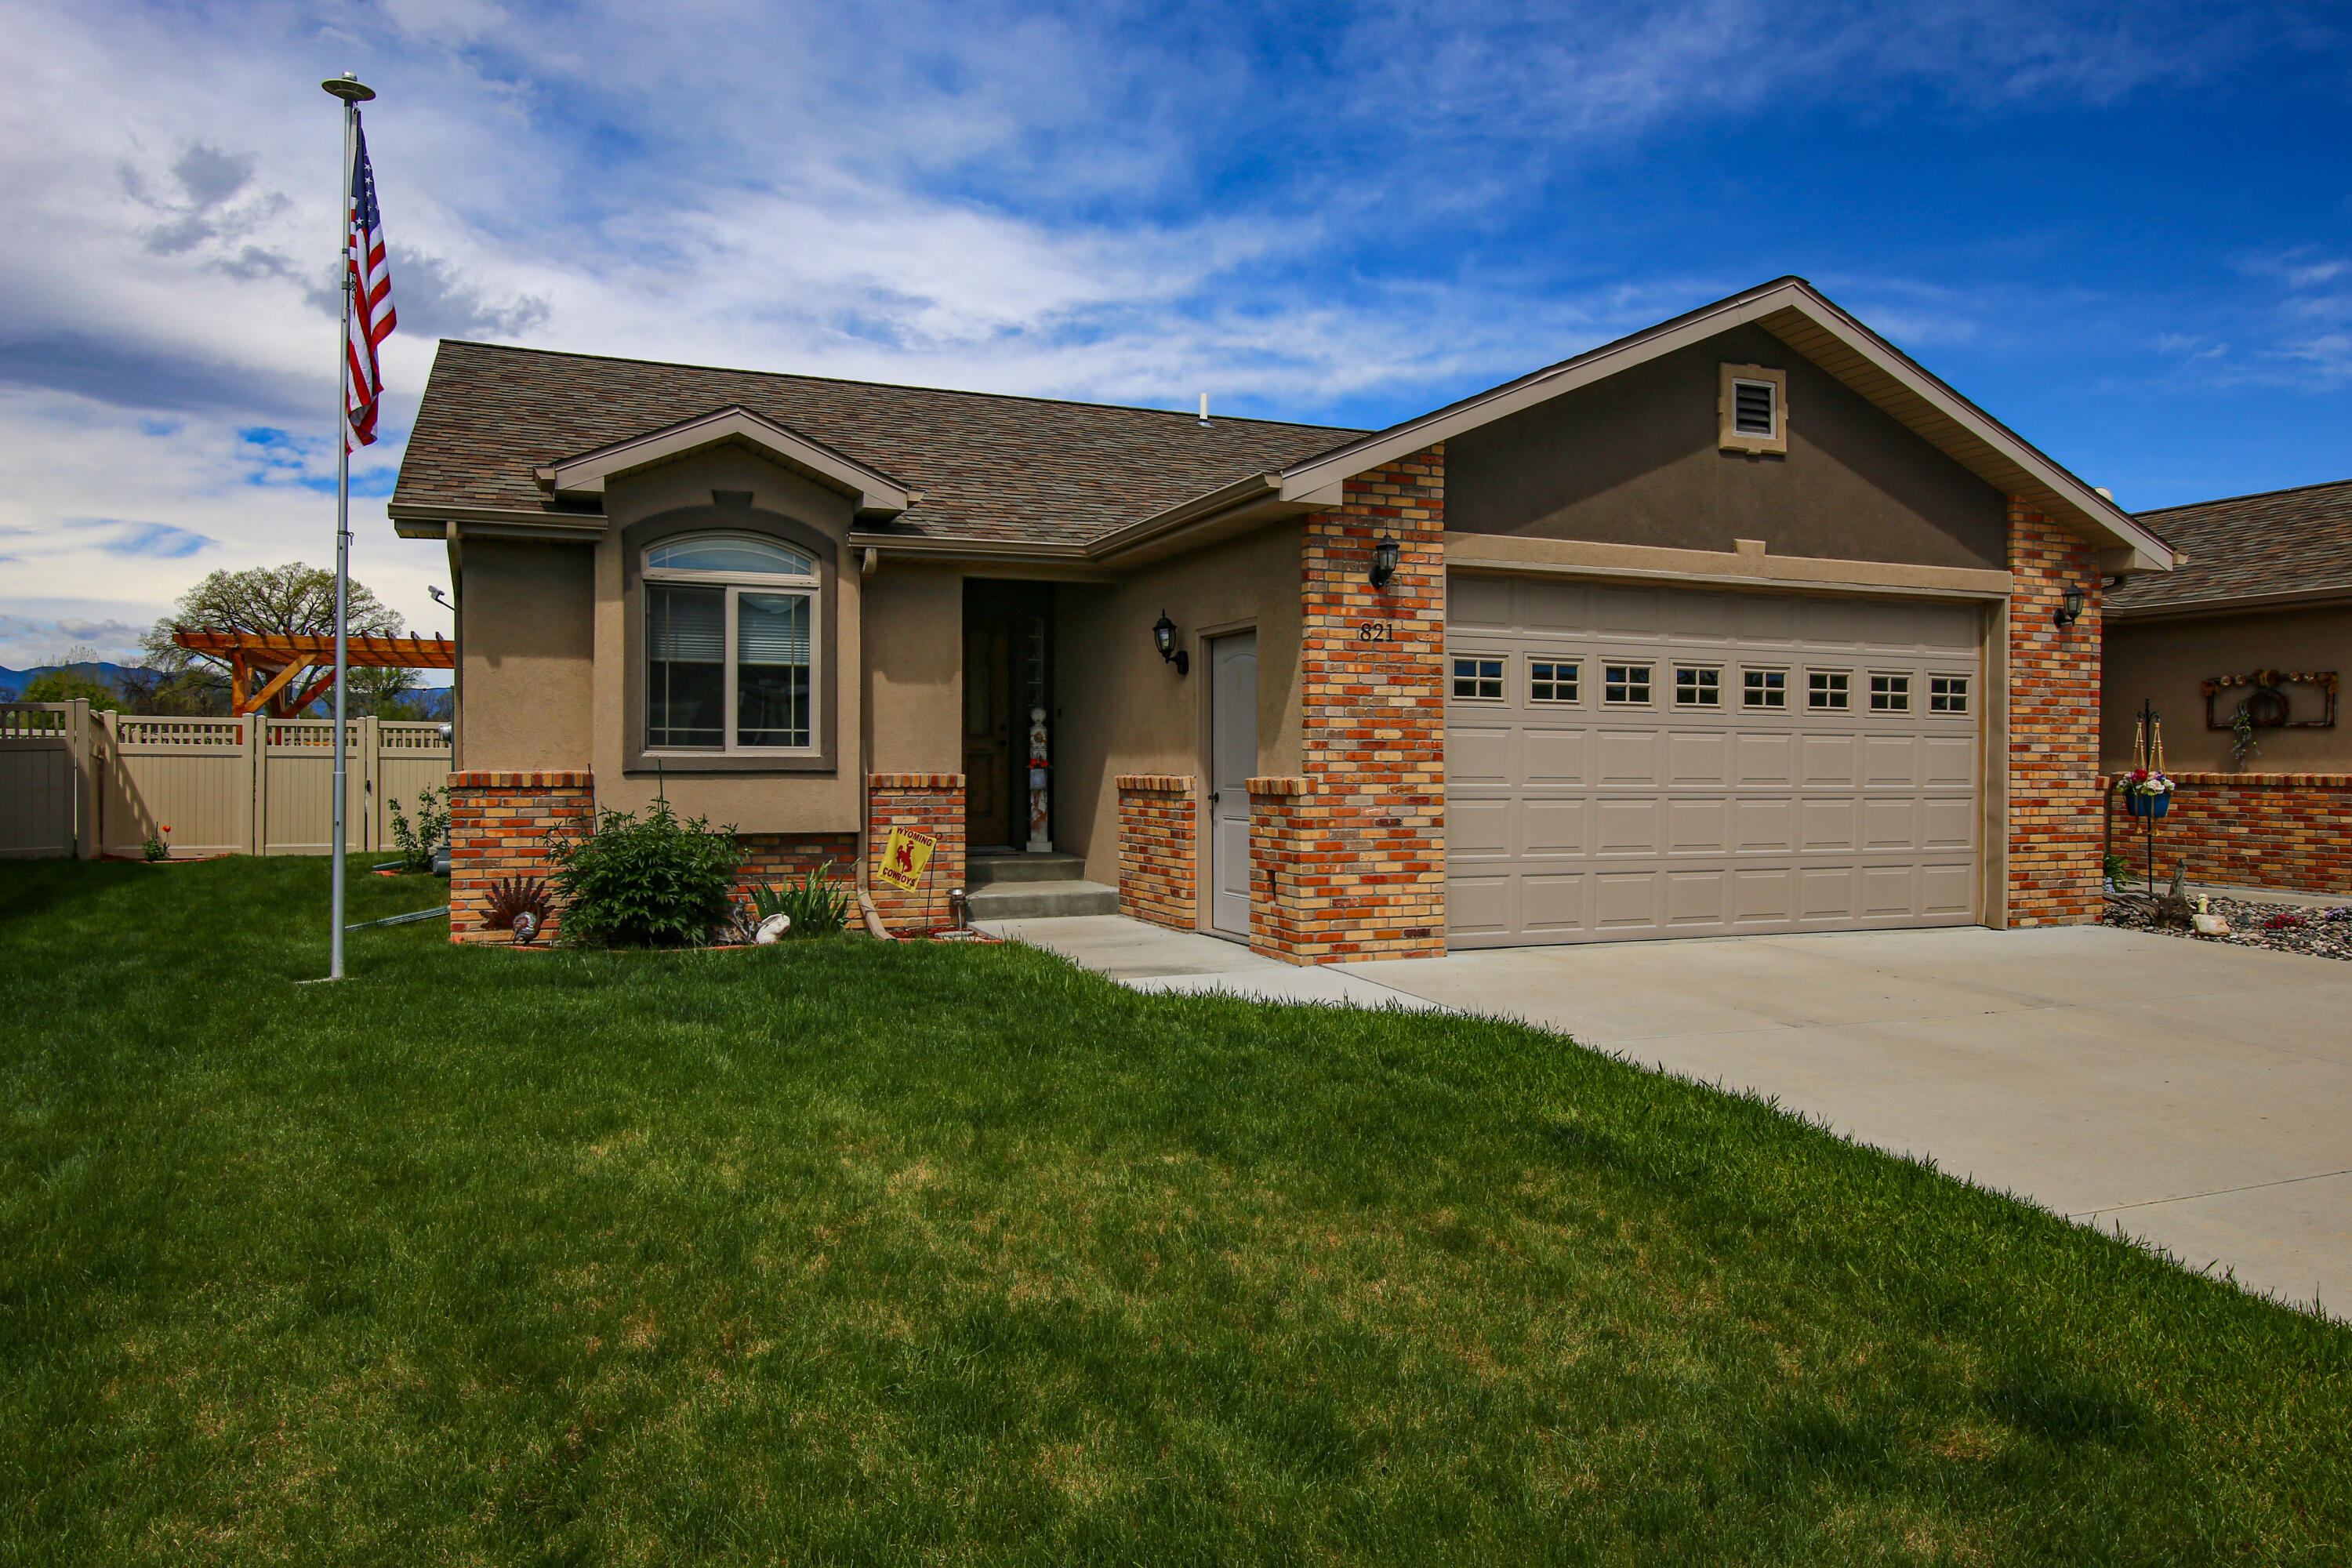 821 Pinyon Place, Sheridan, Wyoming 82801, 2 Bedrooms Bedrooms, ,2 BathroomsBathrooms,Residential,For Sale,Pinyon,21-649